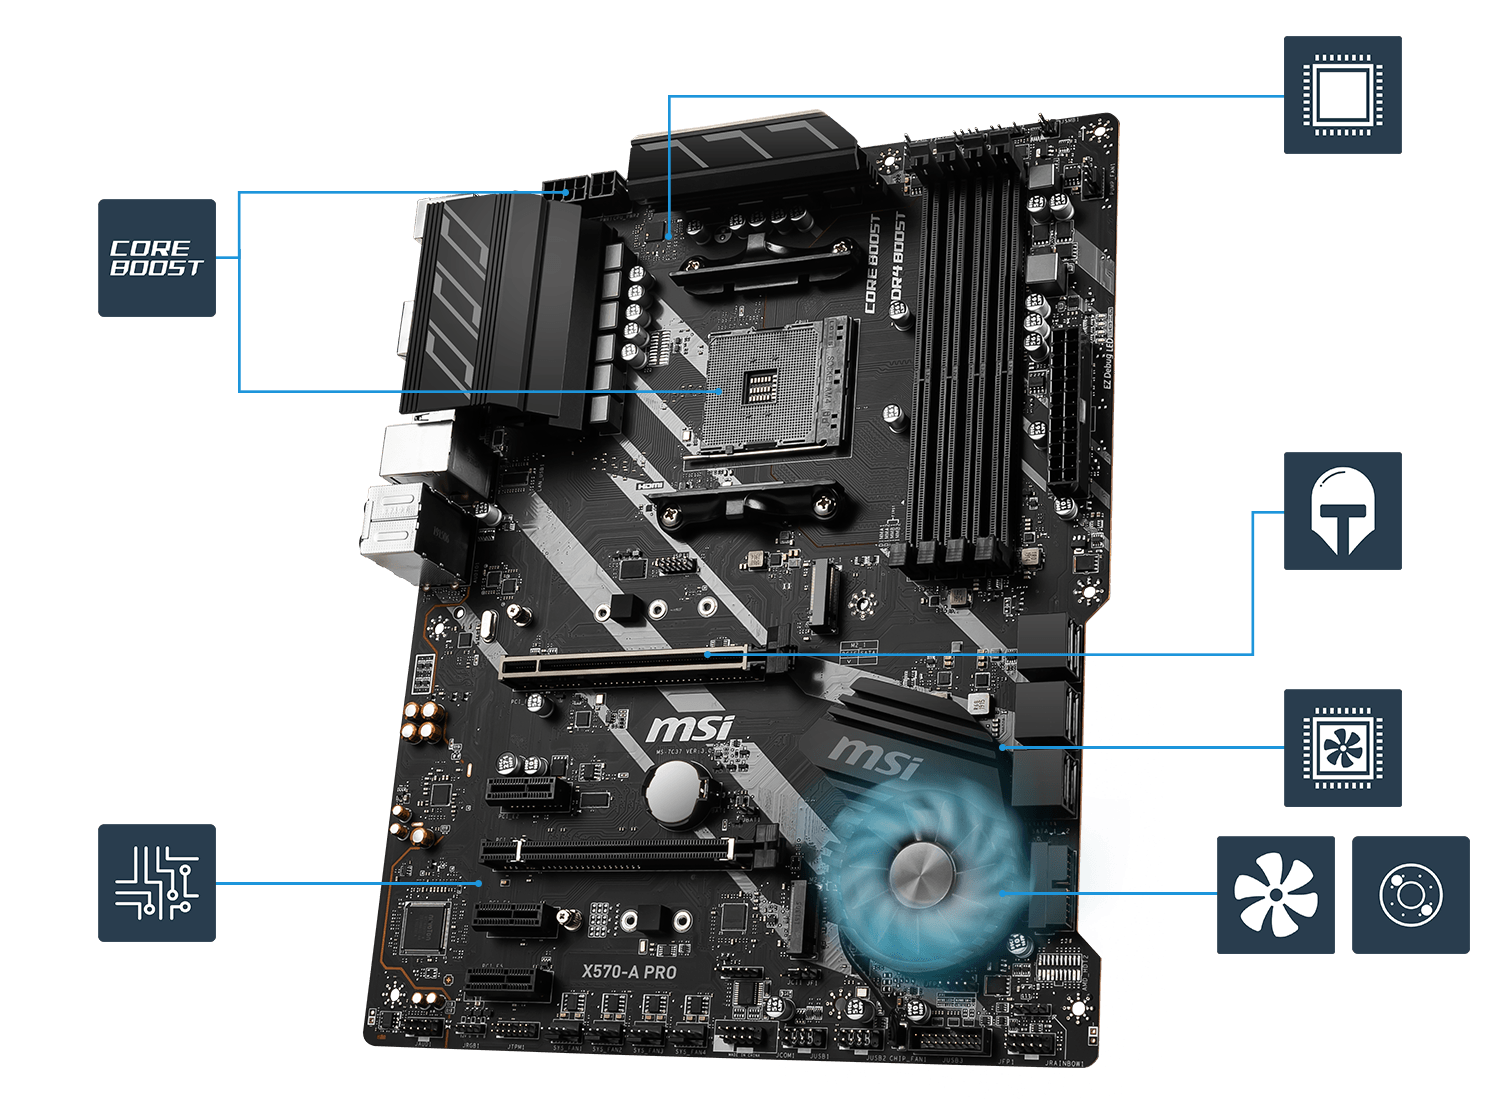 MSI X570-A PRO overview